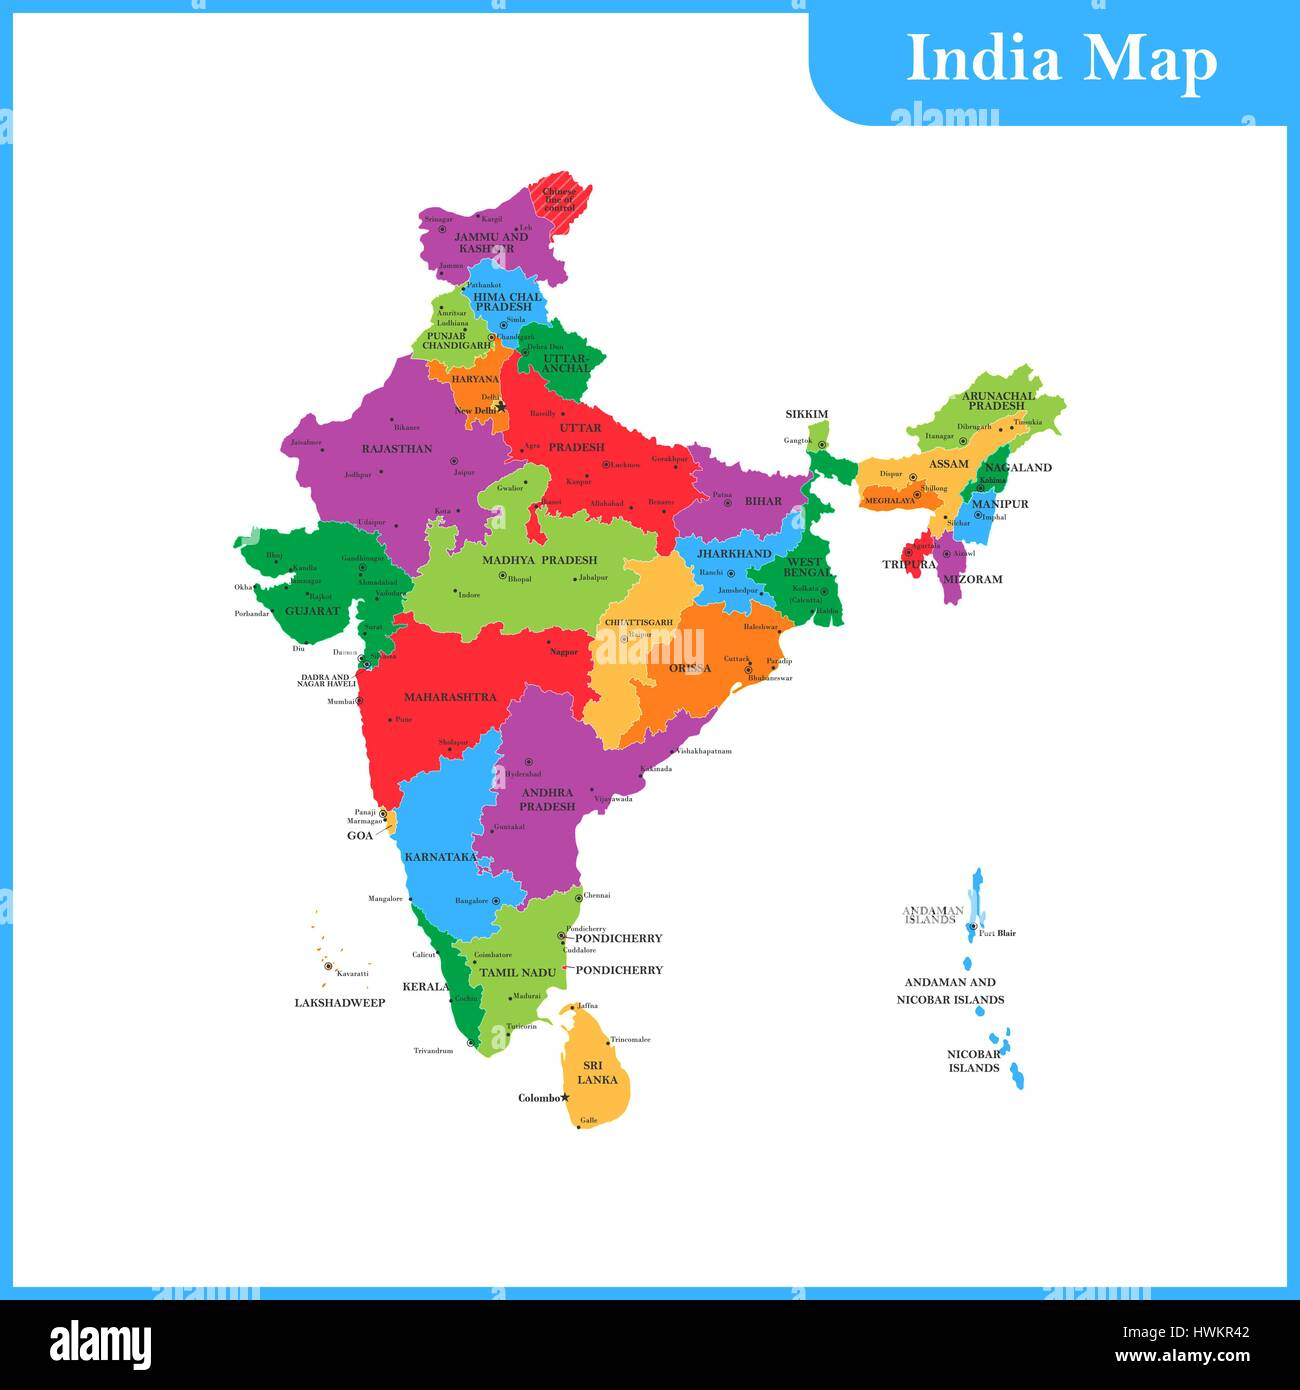 India Map With States Stock Photos India Map With States Stock